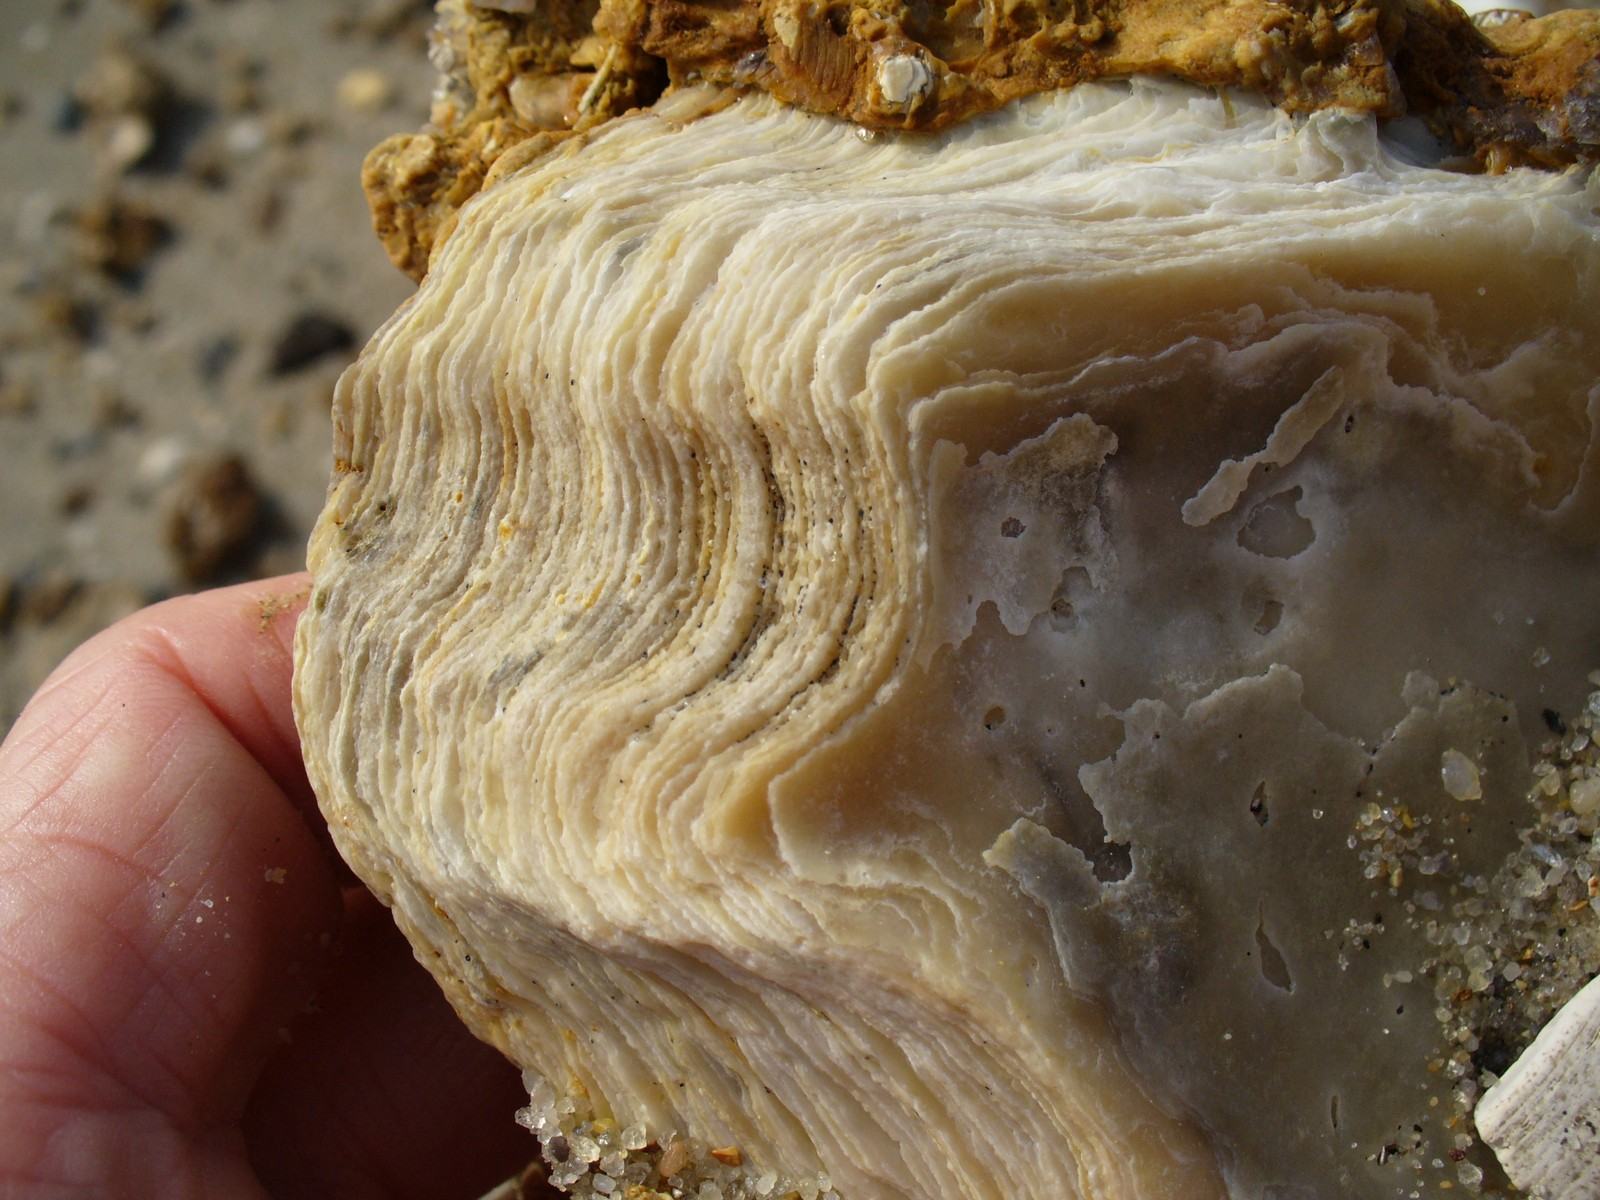 Layers in an oyster shell